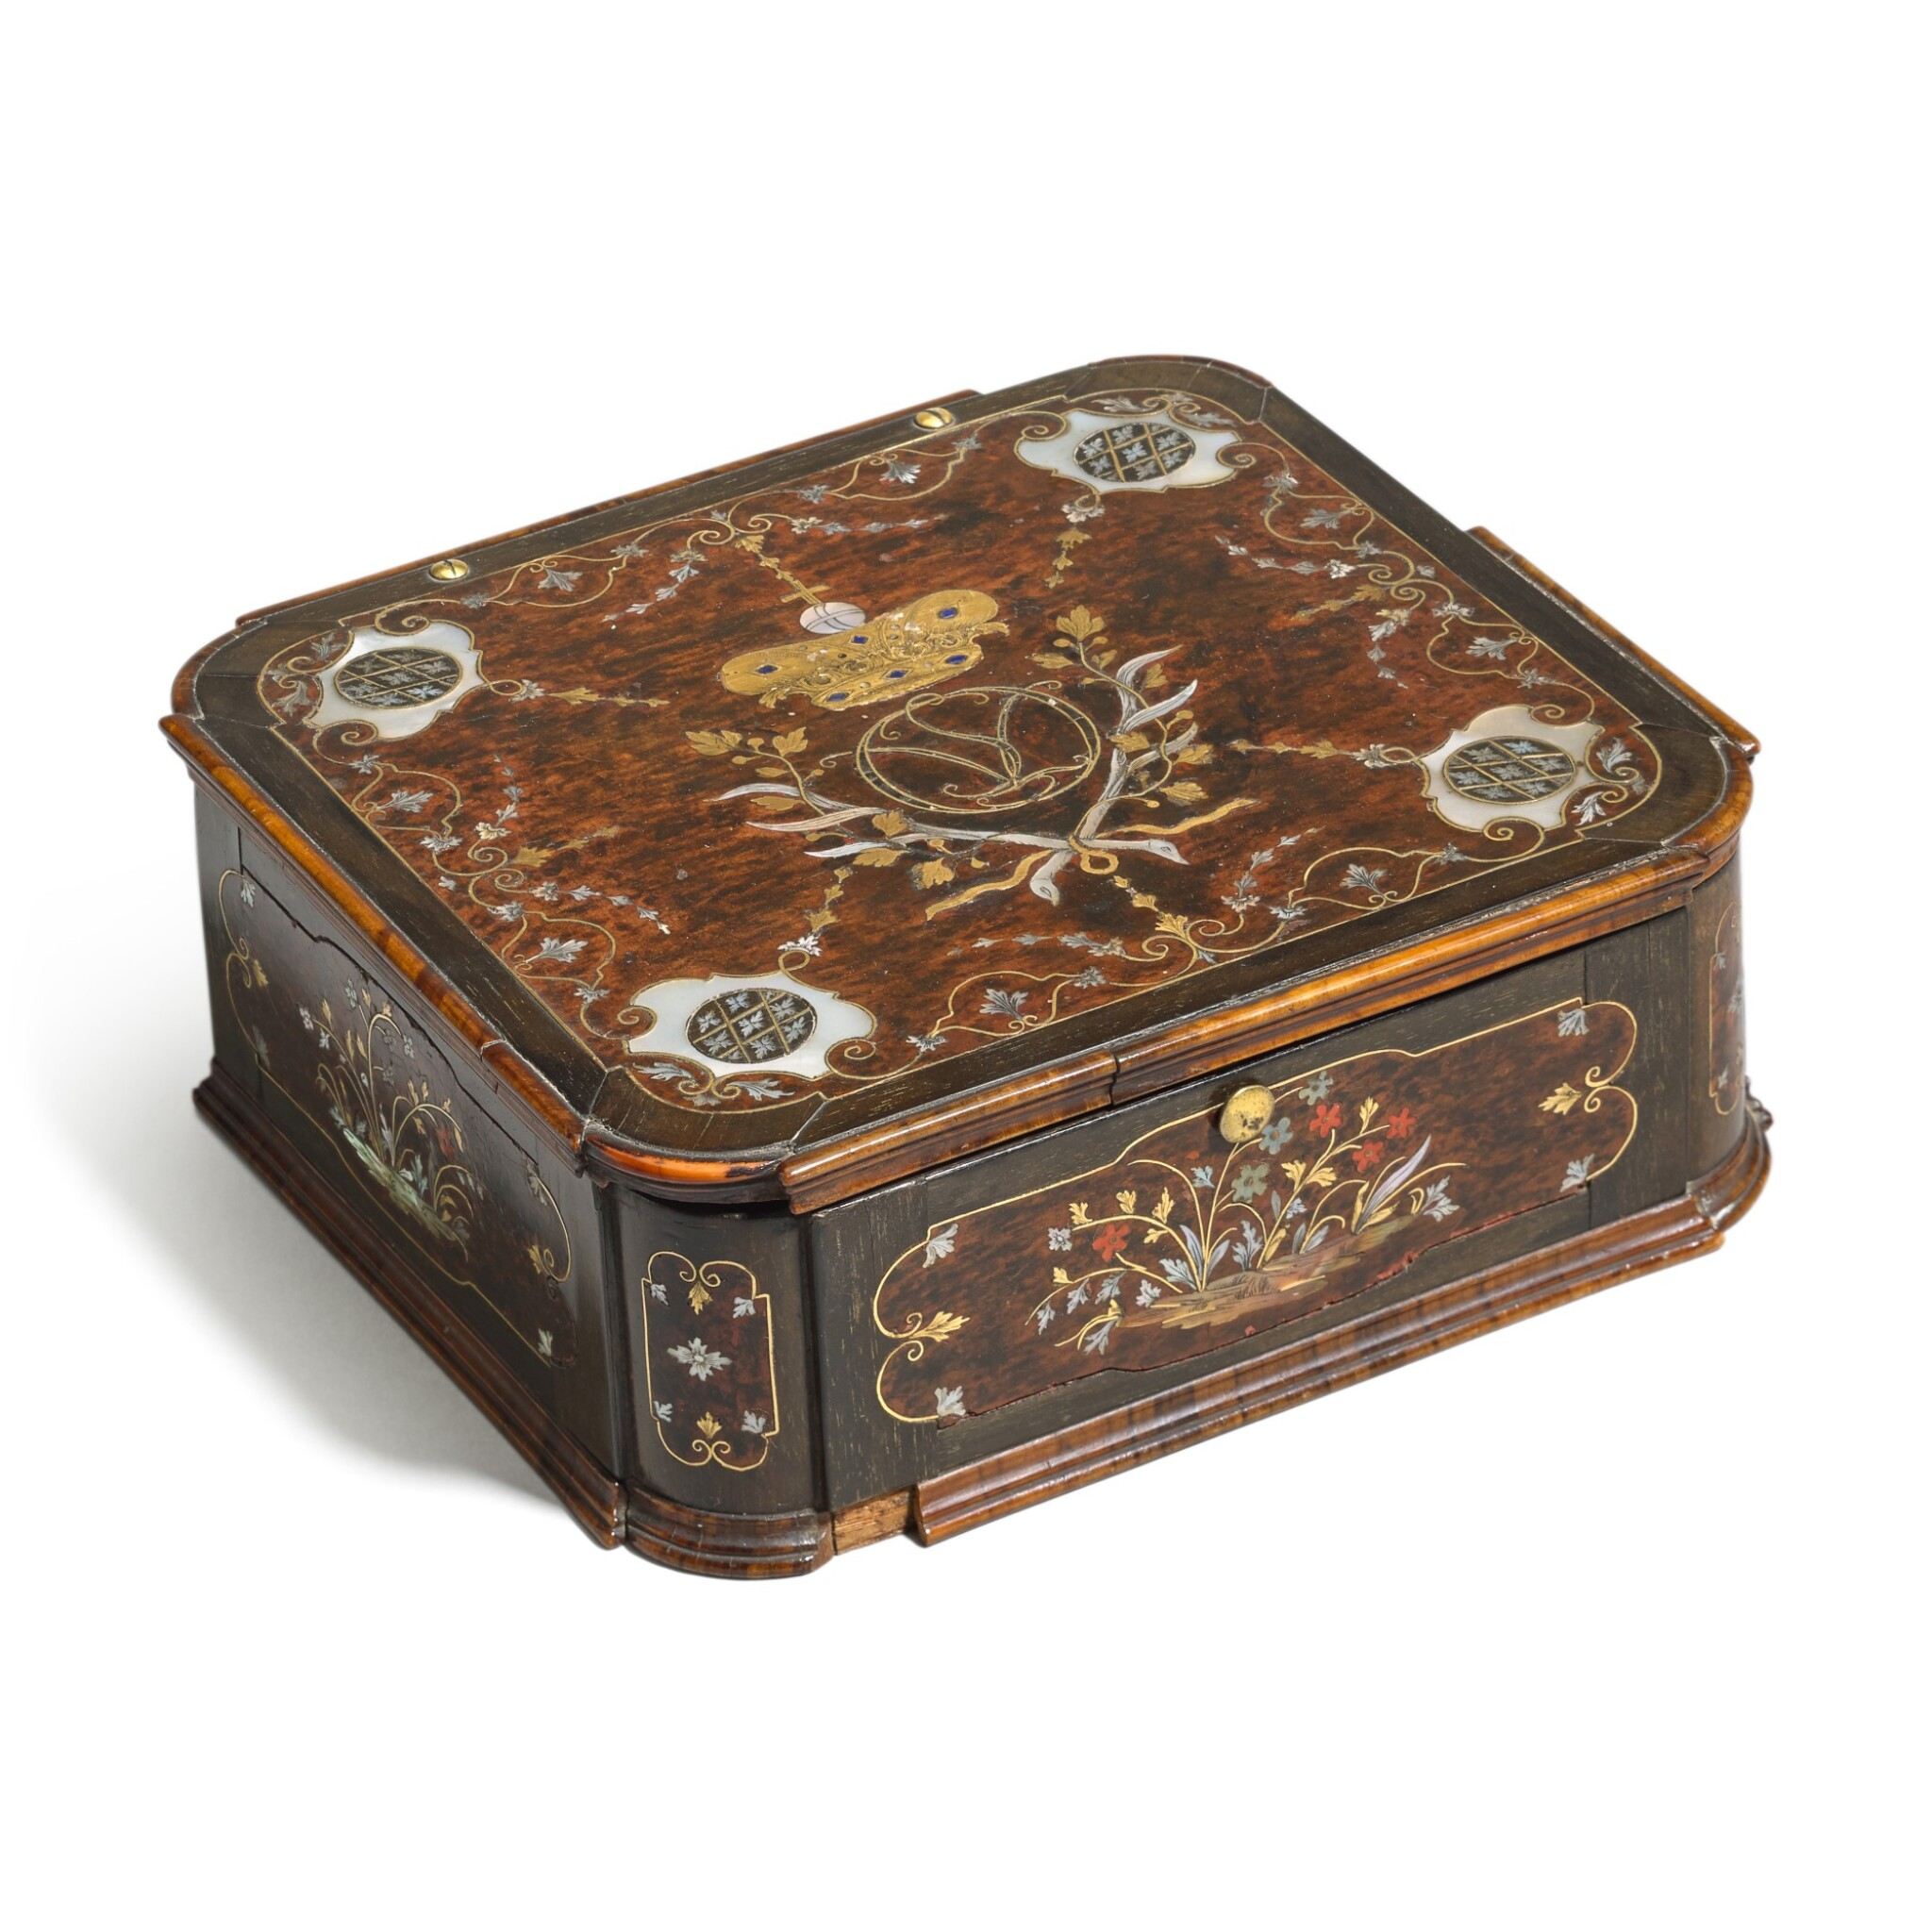 View full screen - View 1 of Lot 14. A German gilt-brass and mother-of-pearl inlaid wood casket, Bavaria, circa 1725.